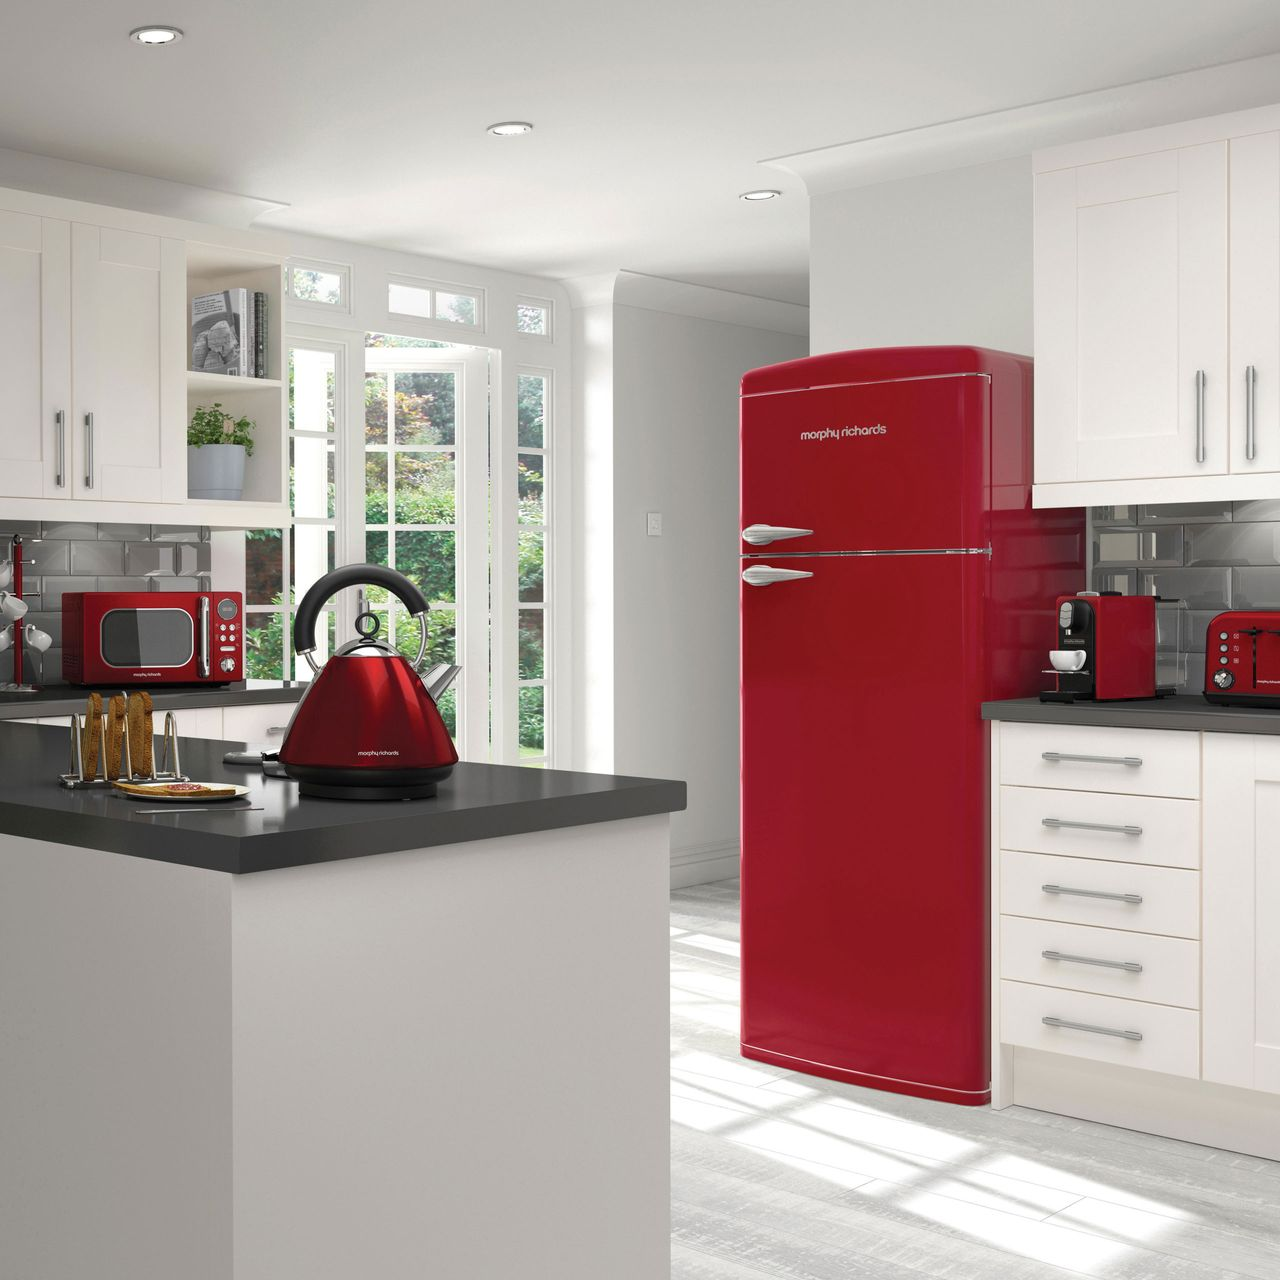 Morphy Richards Microwave Red